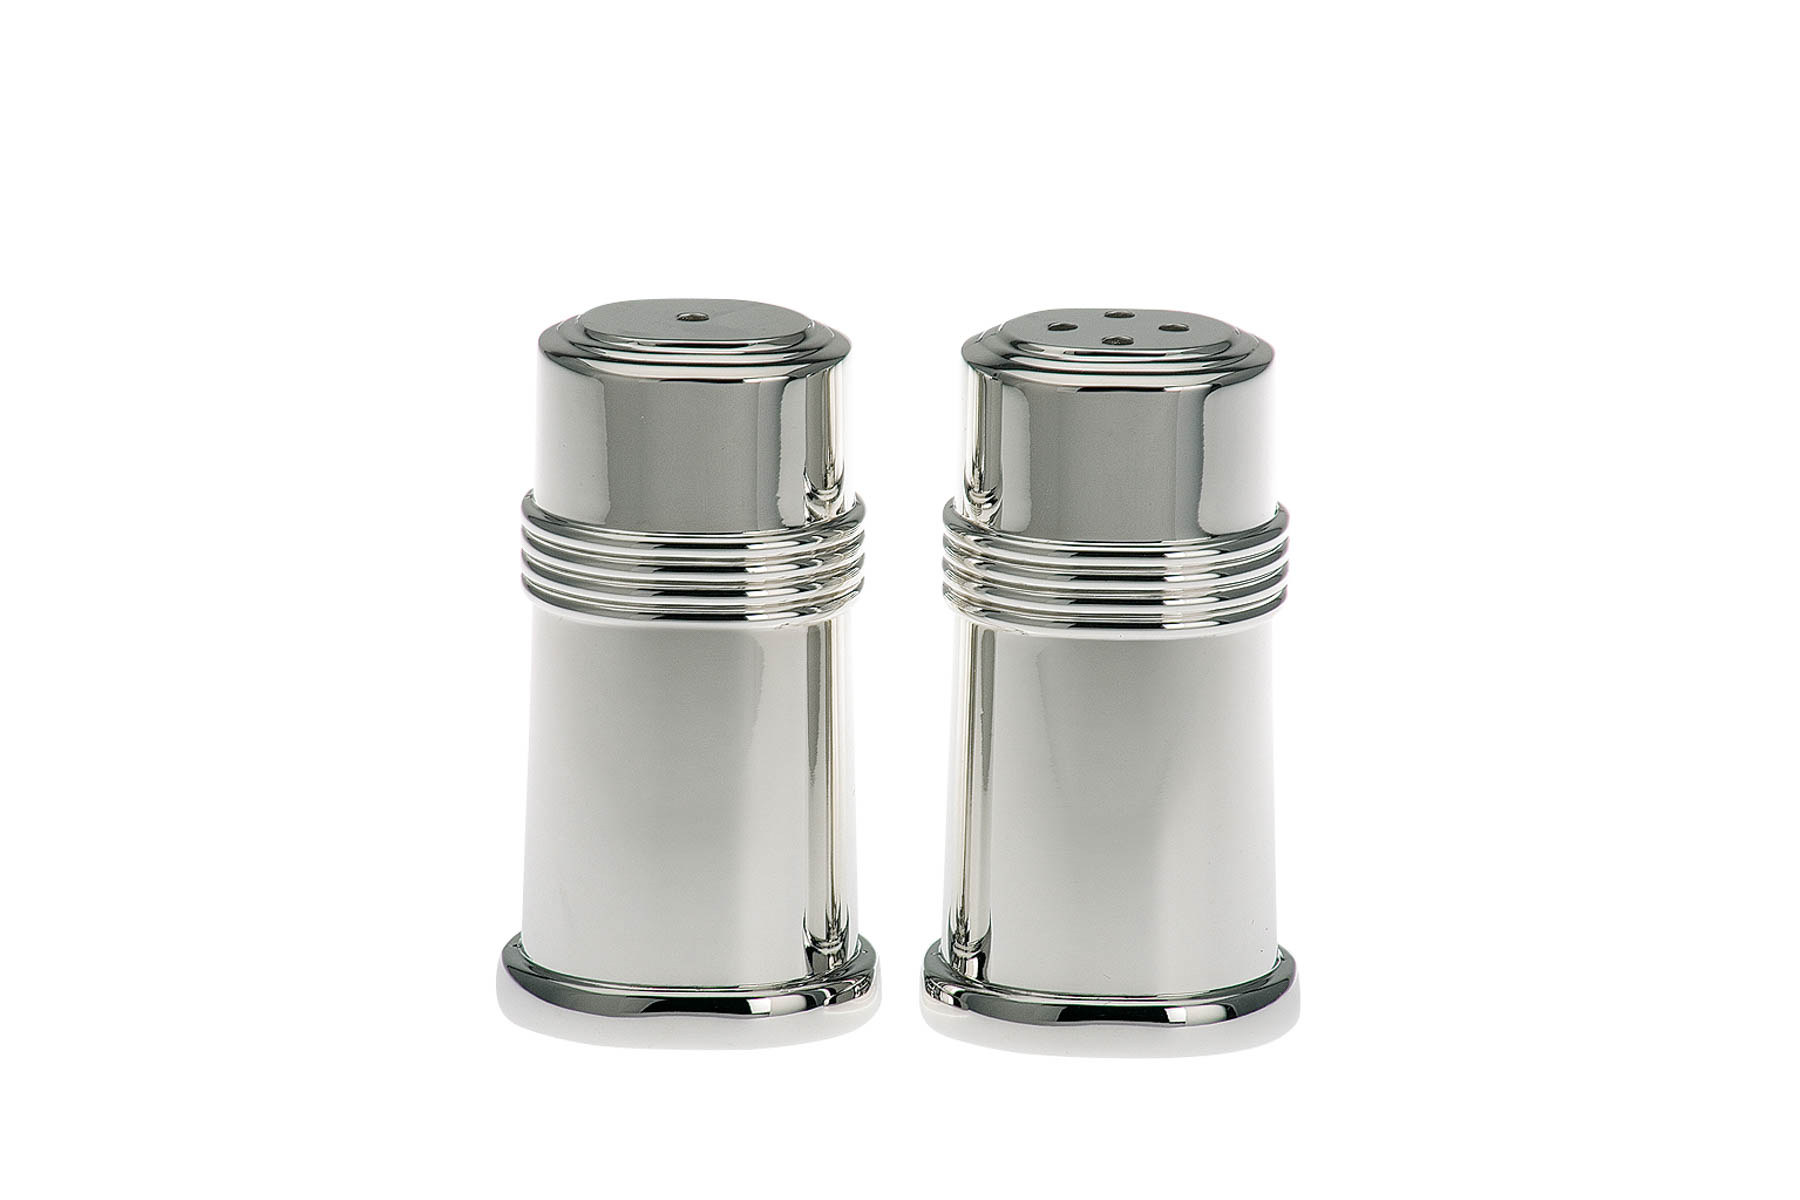 Salt and Pepper Shaker plain